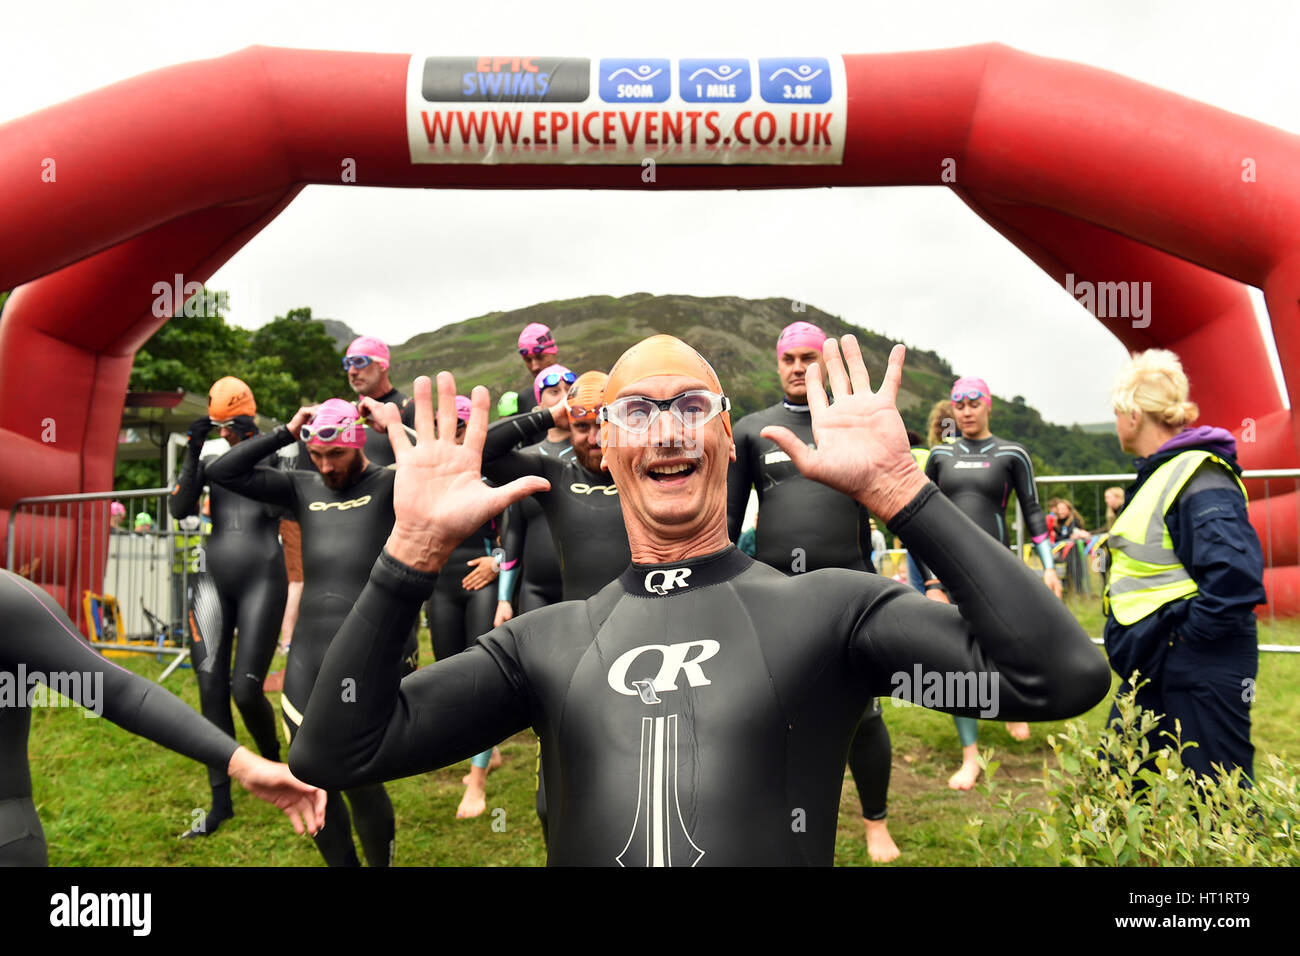 Swimmer posers for the camera before his 1 mile swim with Epic Events, Lake Ullswater, Cumbria - Stock Image